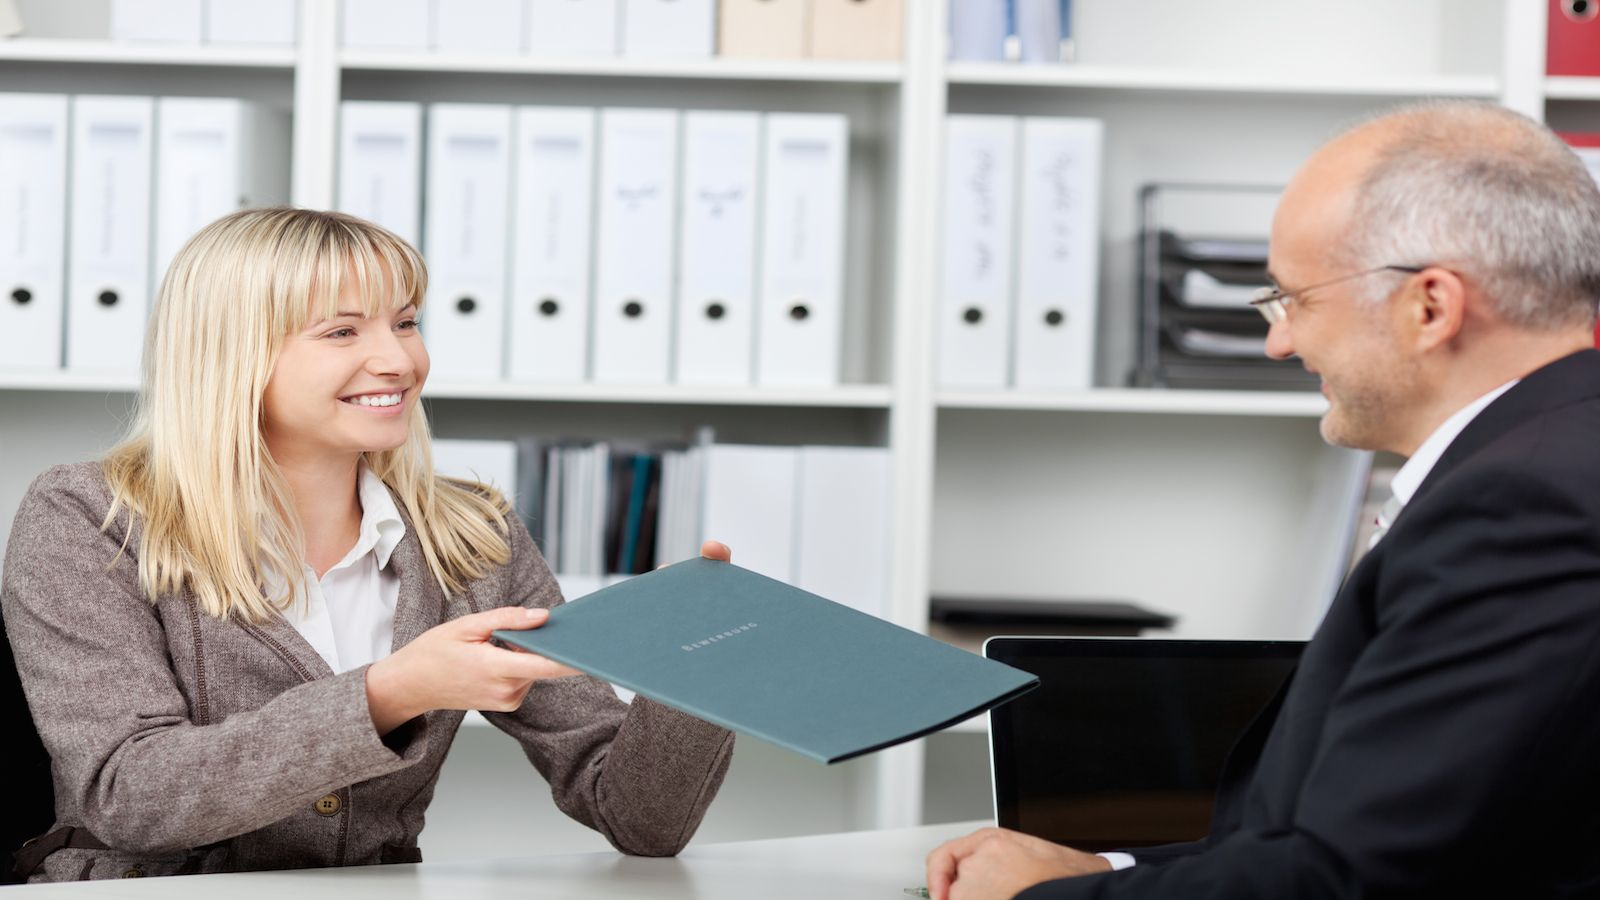 Expert Advice 8 Tips for Writing a Standout Cover Letter - Cover letter tips, Cover letter, New job, Writing a cover letter, Event marketing, Lettering - It's practically unheard of nowadays to apply for a job or an internship without submitting a cover letter  Companies are flooded with resumes, and candidates need to stand out in…